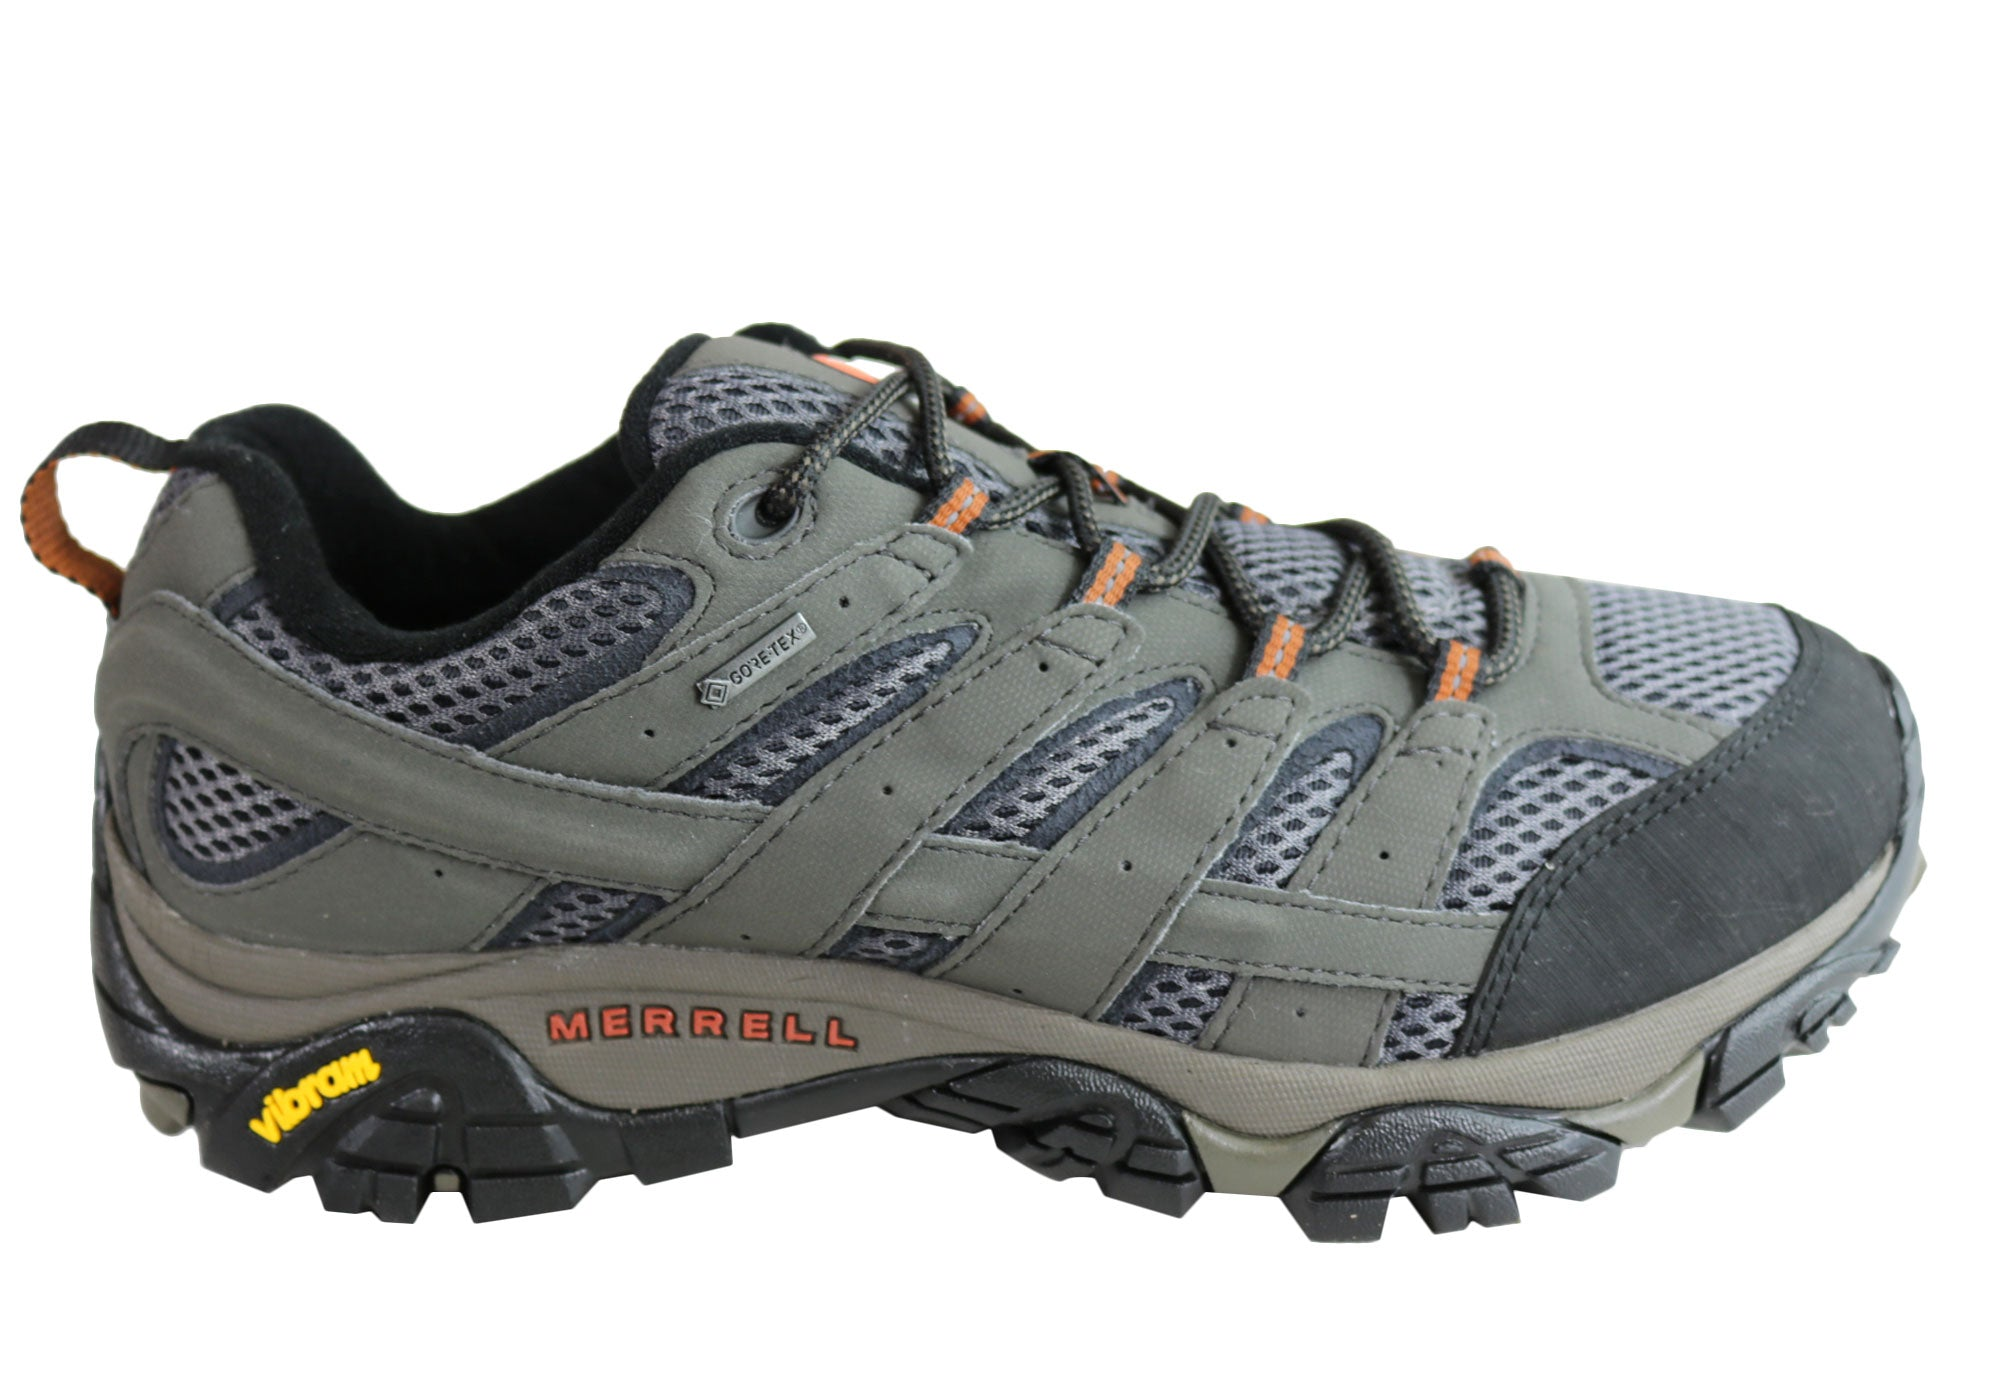 online buying now special selection of Details about Brand New Merrell Moab 2 Gtx Comfort Wide Fit Mens Hiking  Shoes